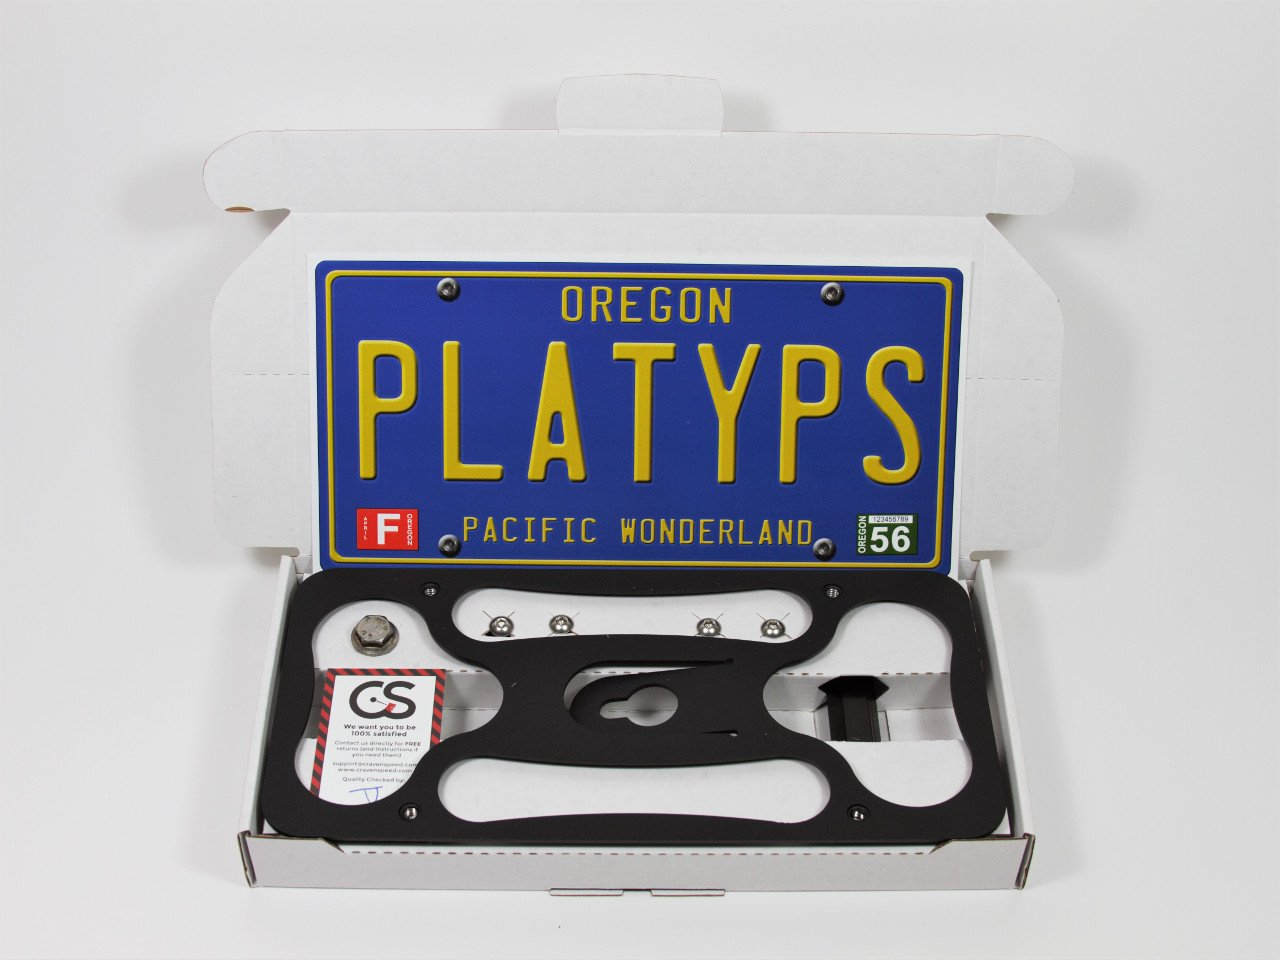 CravenSpeed The Platypus License Plate Mount for Subaru WRX/STI | 2015-2019 | No Drilling | Installs in Seconds | Made of Stainless Steel & Aluminum | Made in USA by CravenSpeed (Image #2)